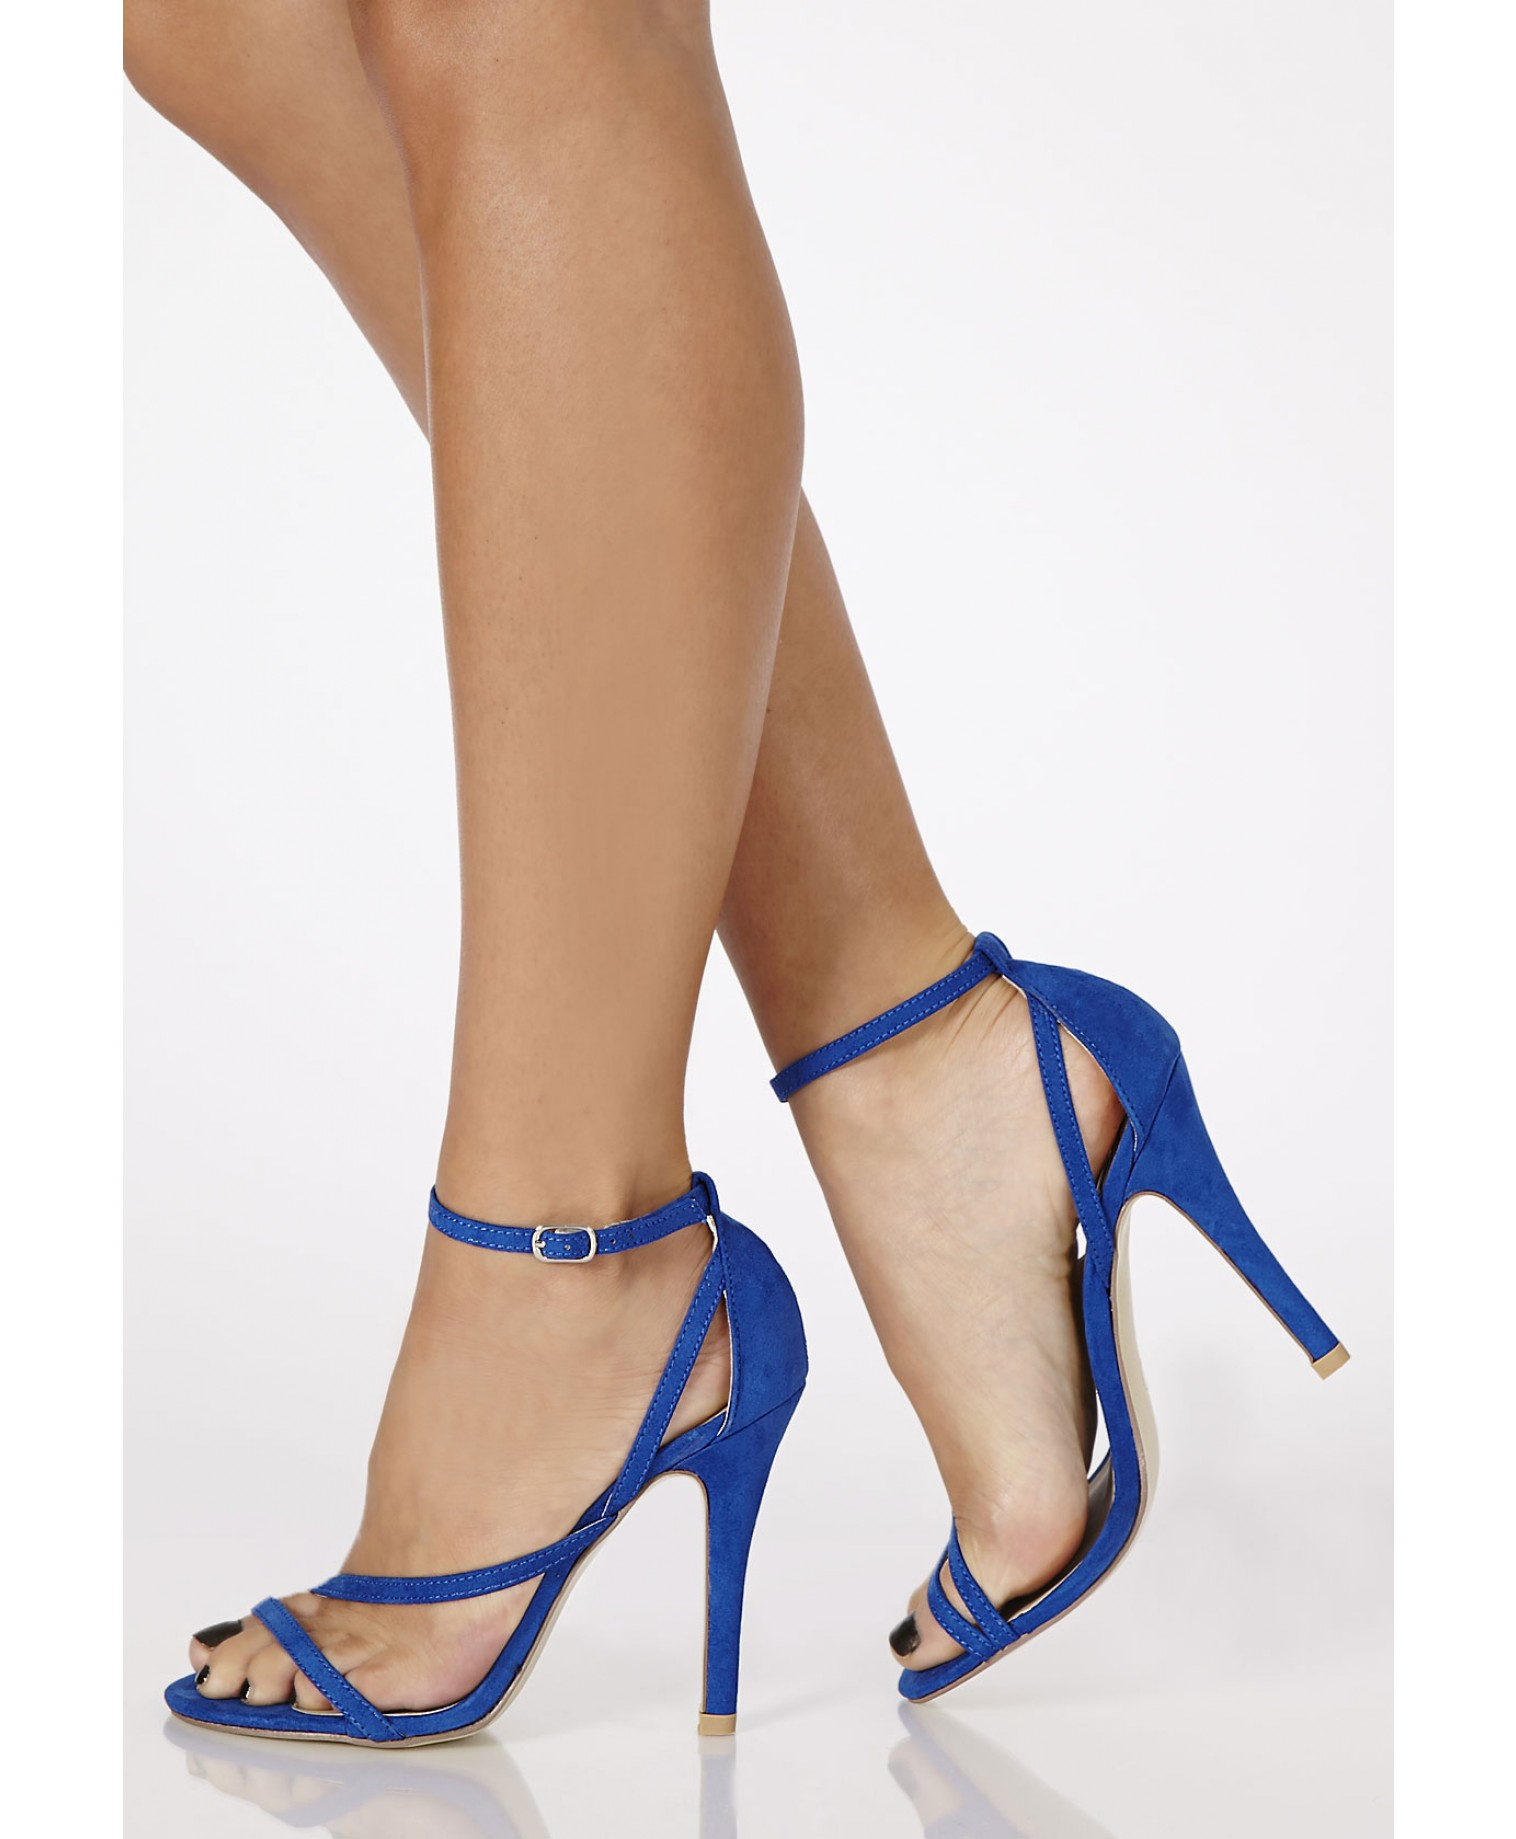 Missguided Nana Faux Suede Strappy Heels in Cobalt Blue in Blue | Lyst